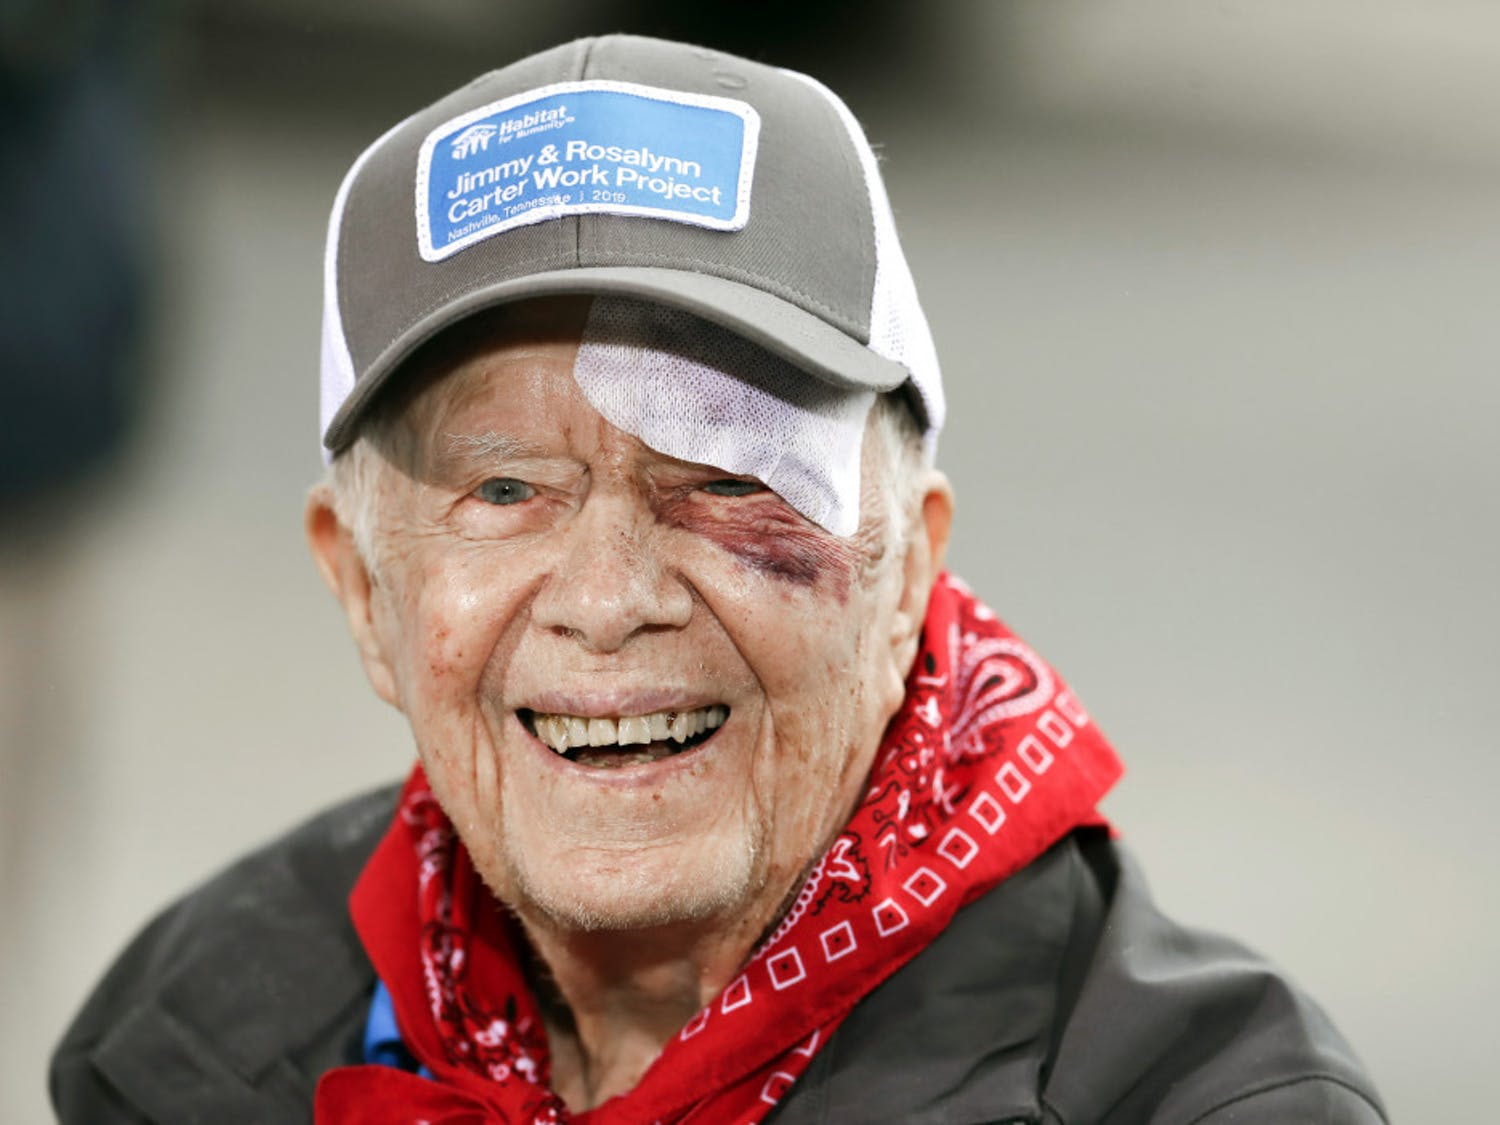 Former President Jimmy Carter answers questions during a news conference at a Habitat for Humanity project Monday, Oct. 7, 2019, in Nashville, Tenn. Carter fell at home on Sunday, requiring over a dozen stitches, but he did not let his injuries keep him from participating in his 36th building project with the nonprofit Christian housing organization. He turned 95 last Tuesday, becoming the first U.S. president to reach that milestone. (AP Photo/Mark Humphrey)